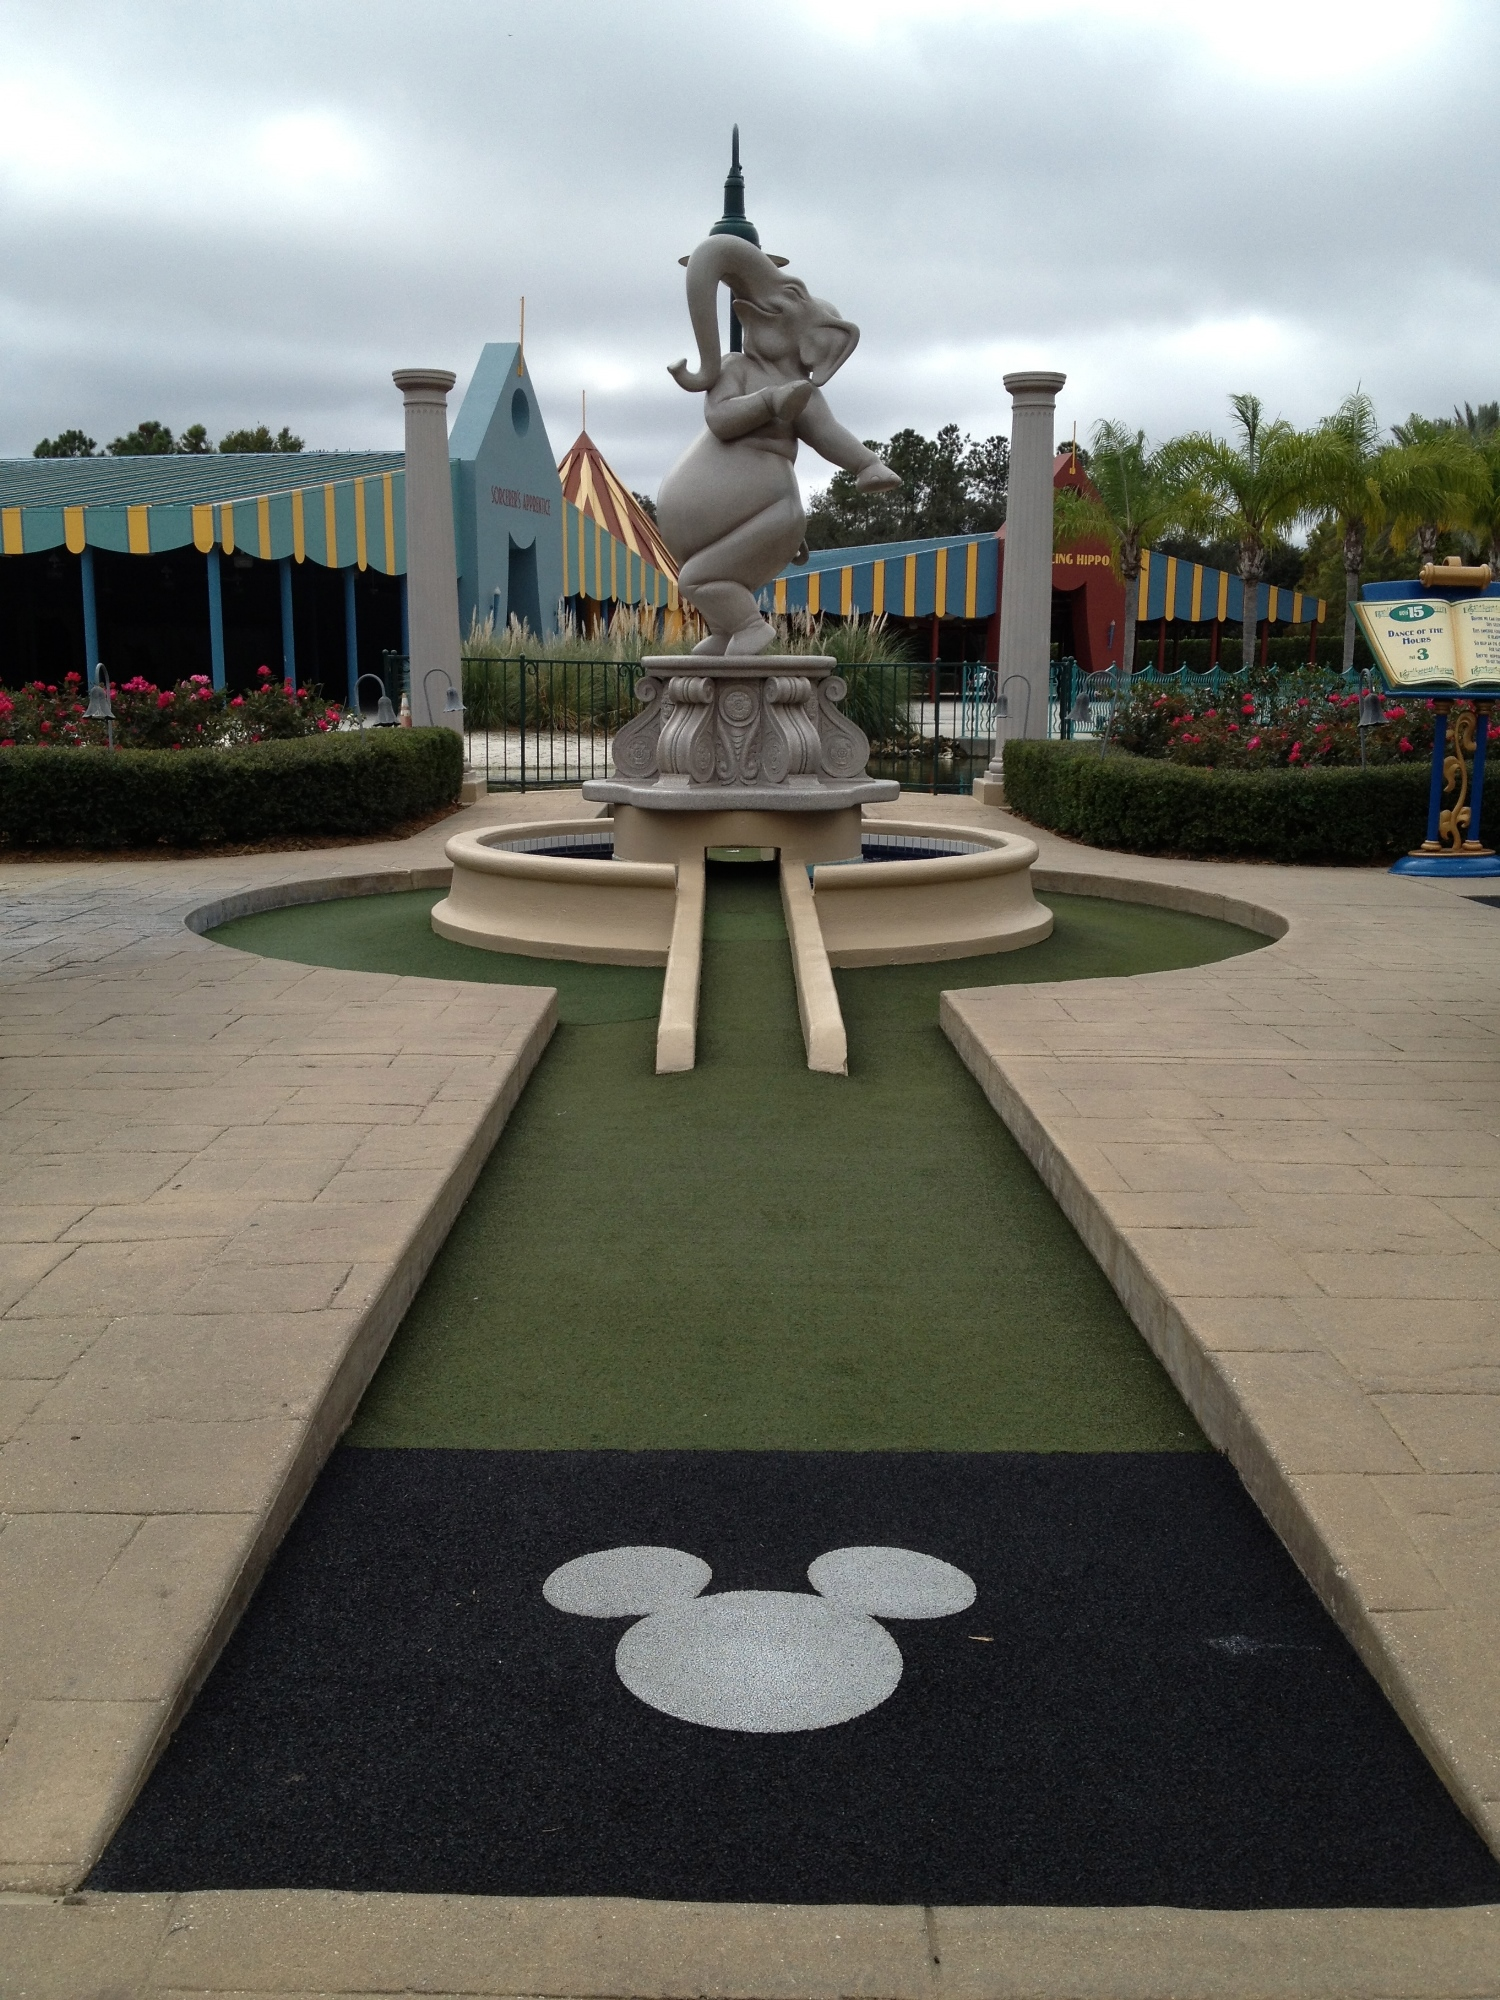 One of the holes at Fantasia GarDens.